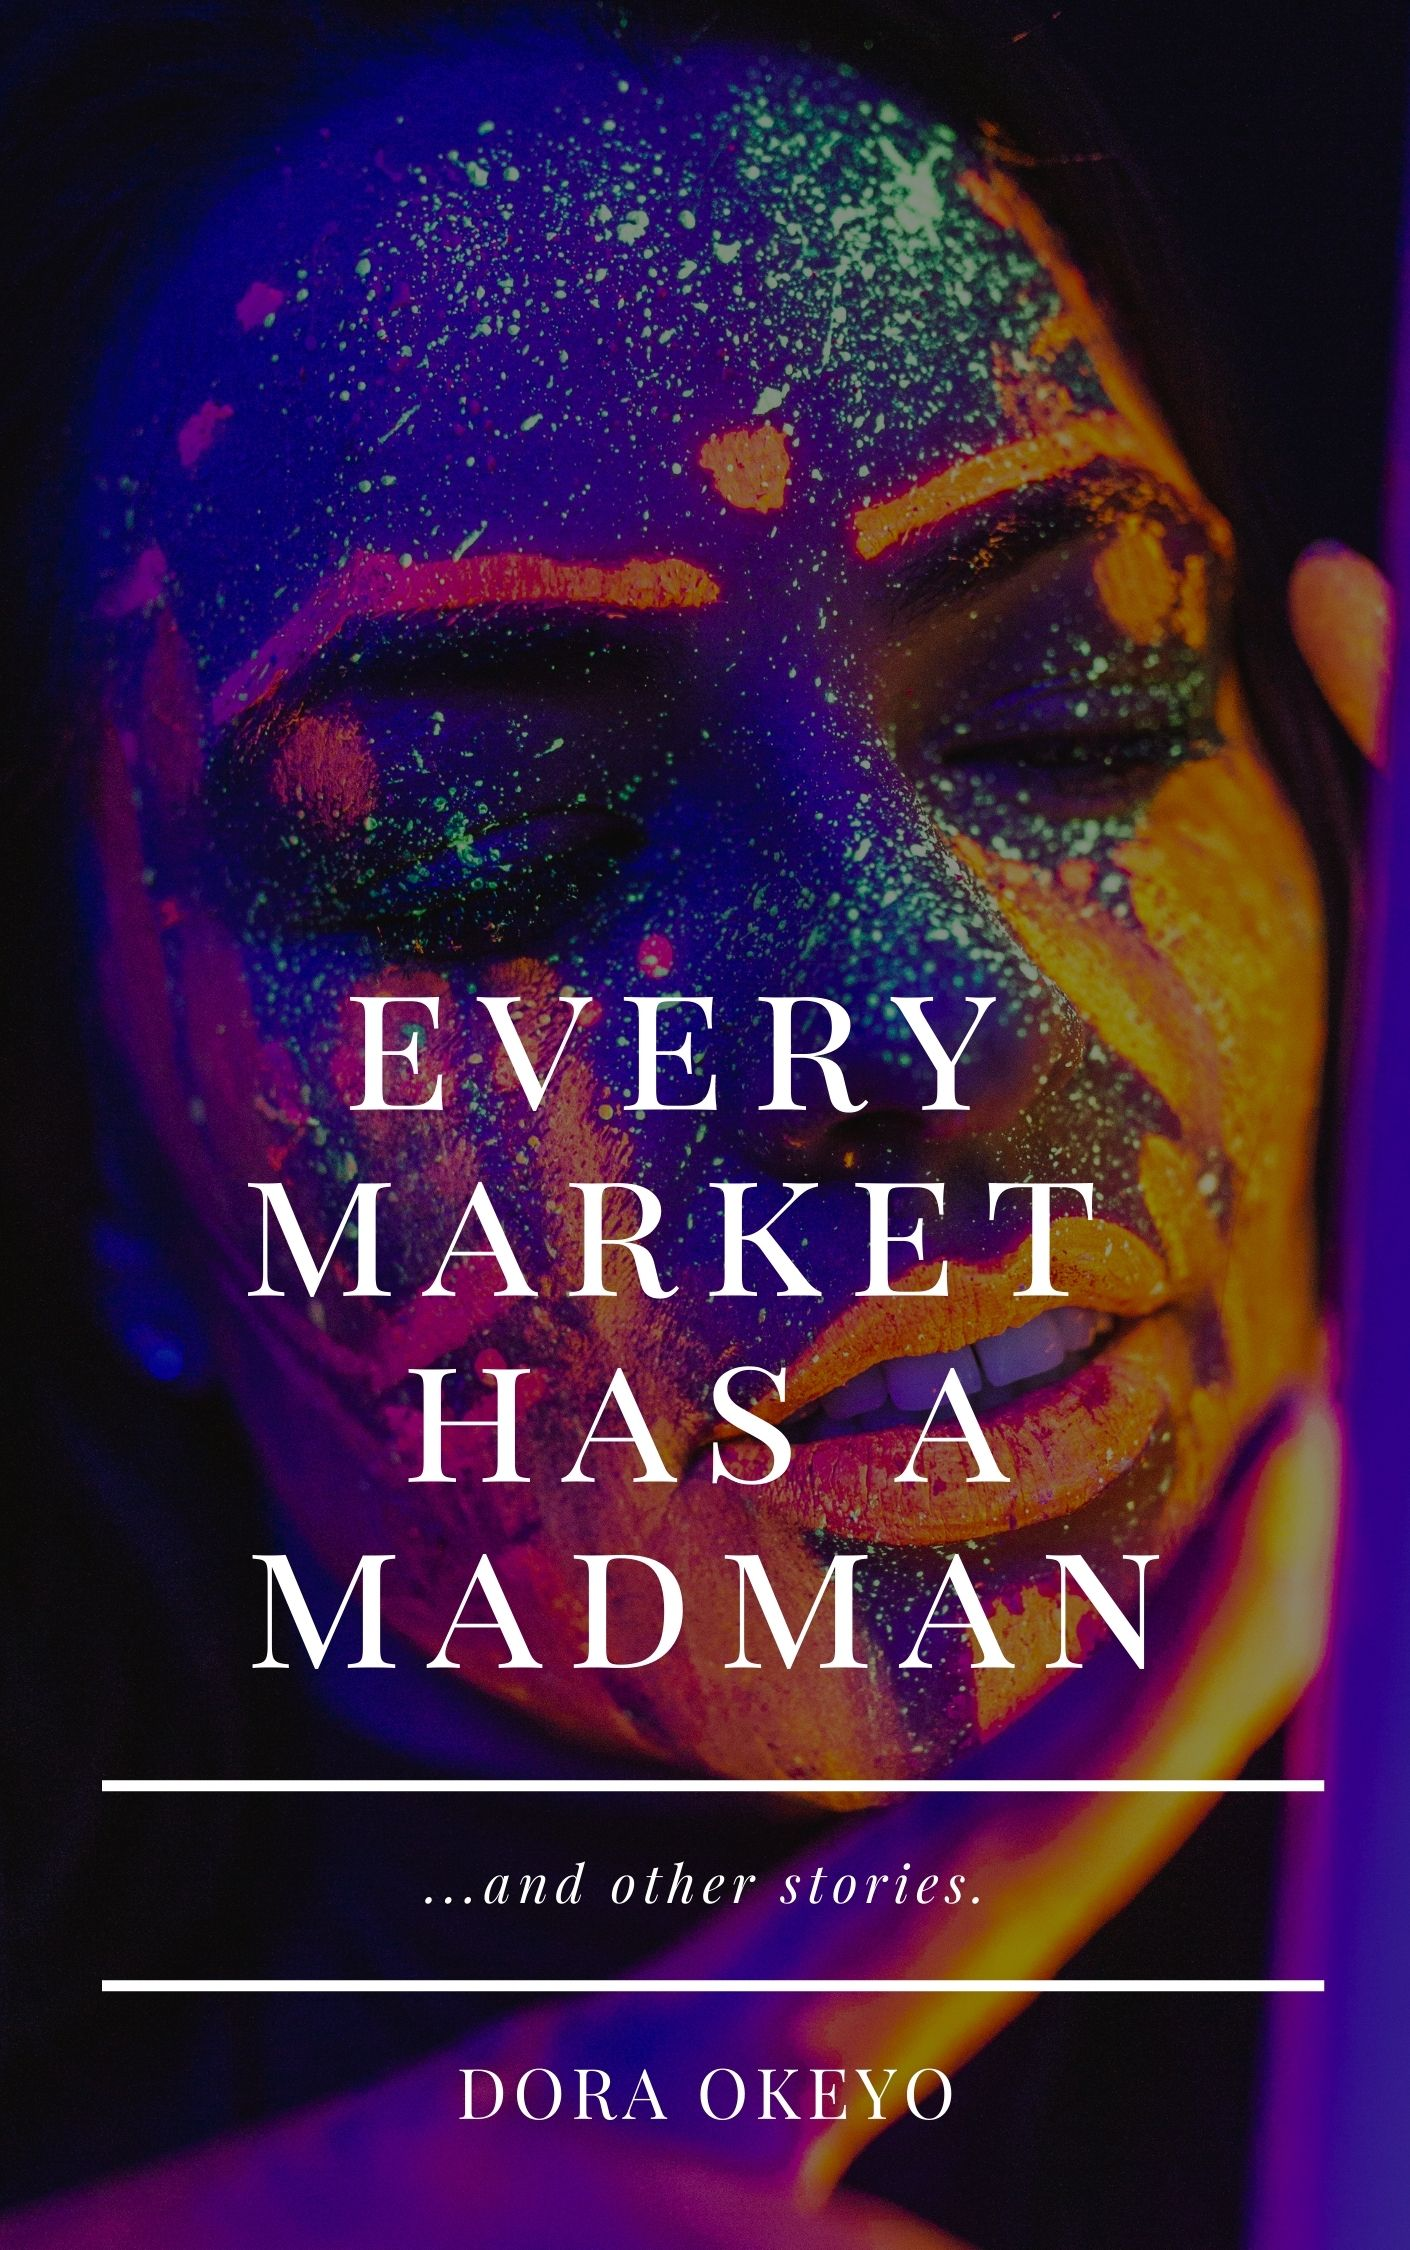 every market has a madman (3)